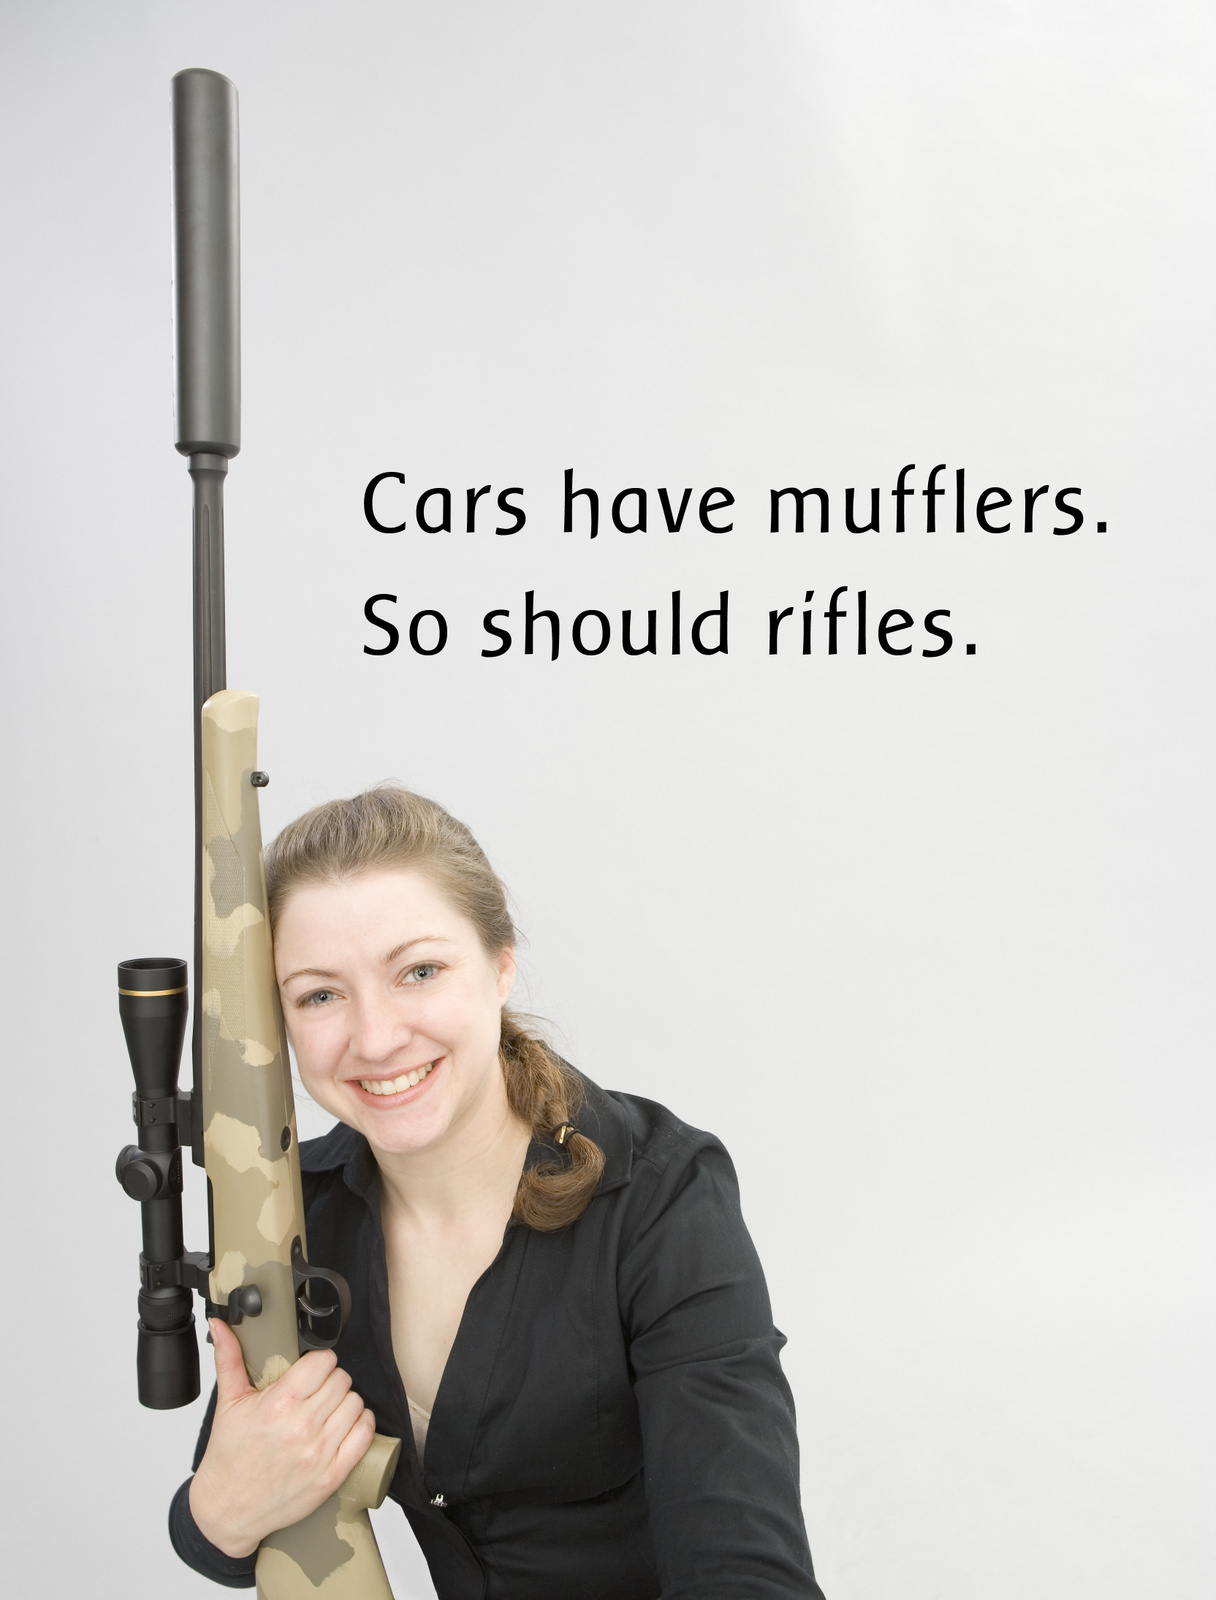 Cars and guns should be quiet